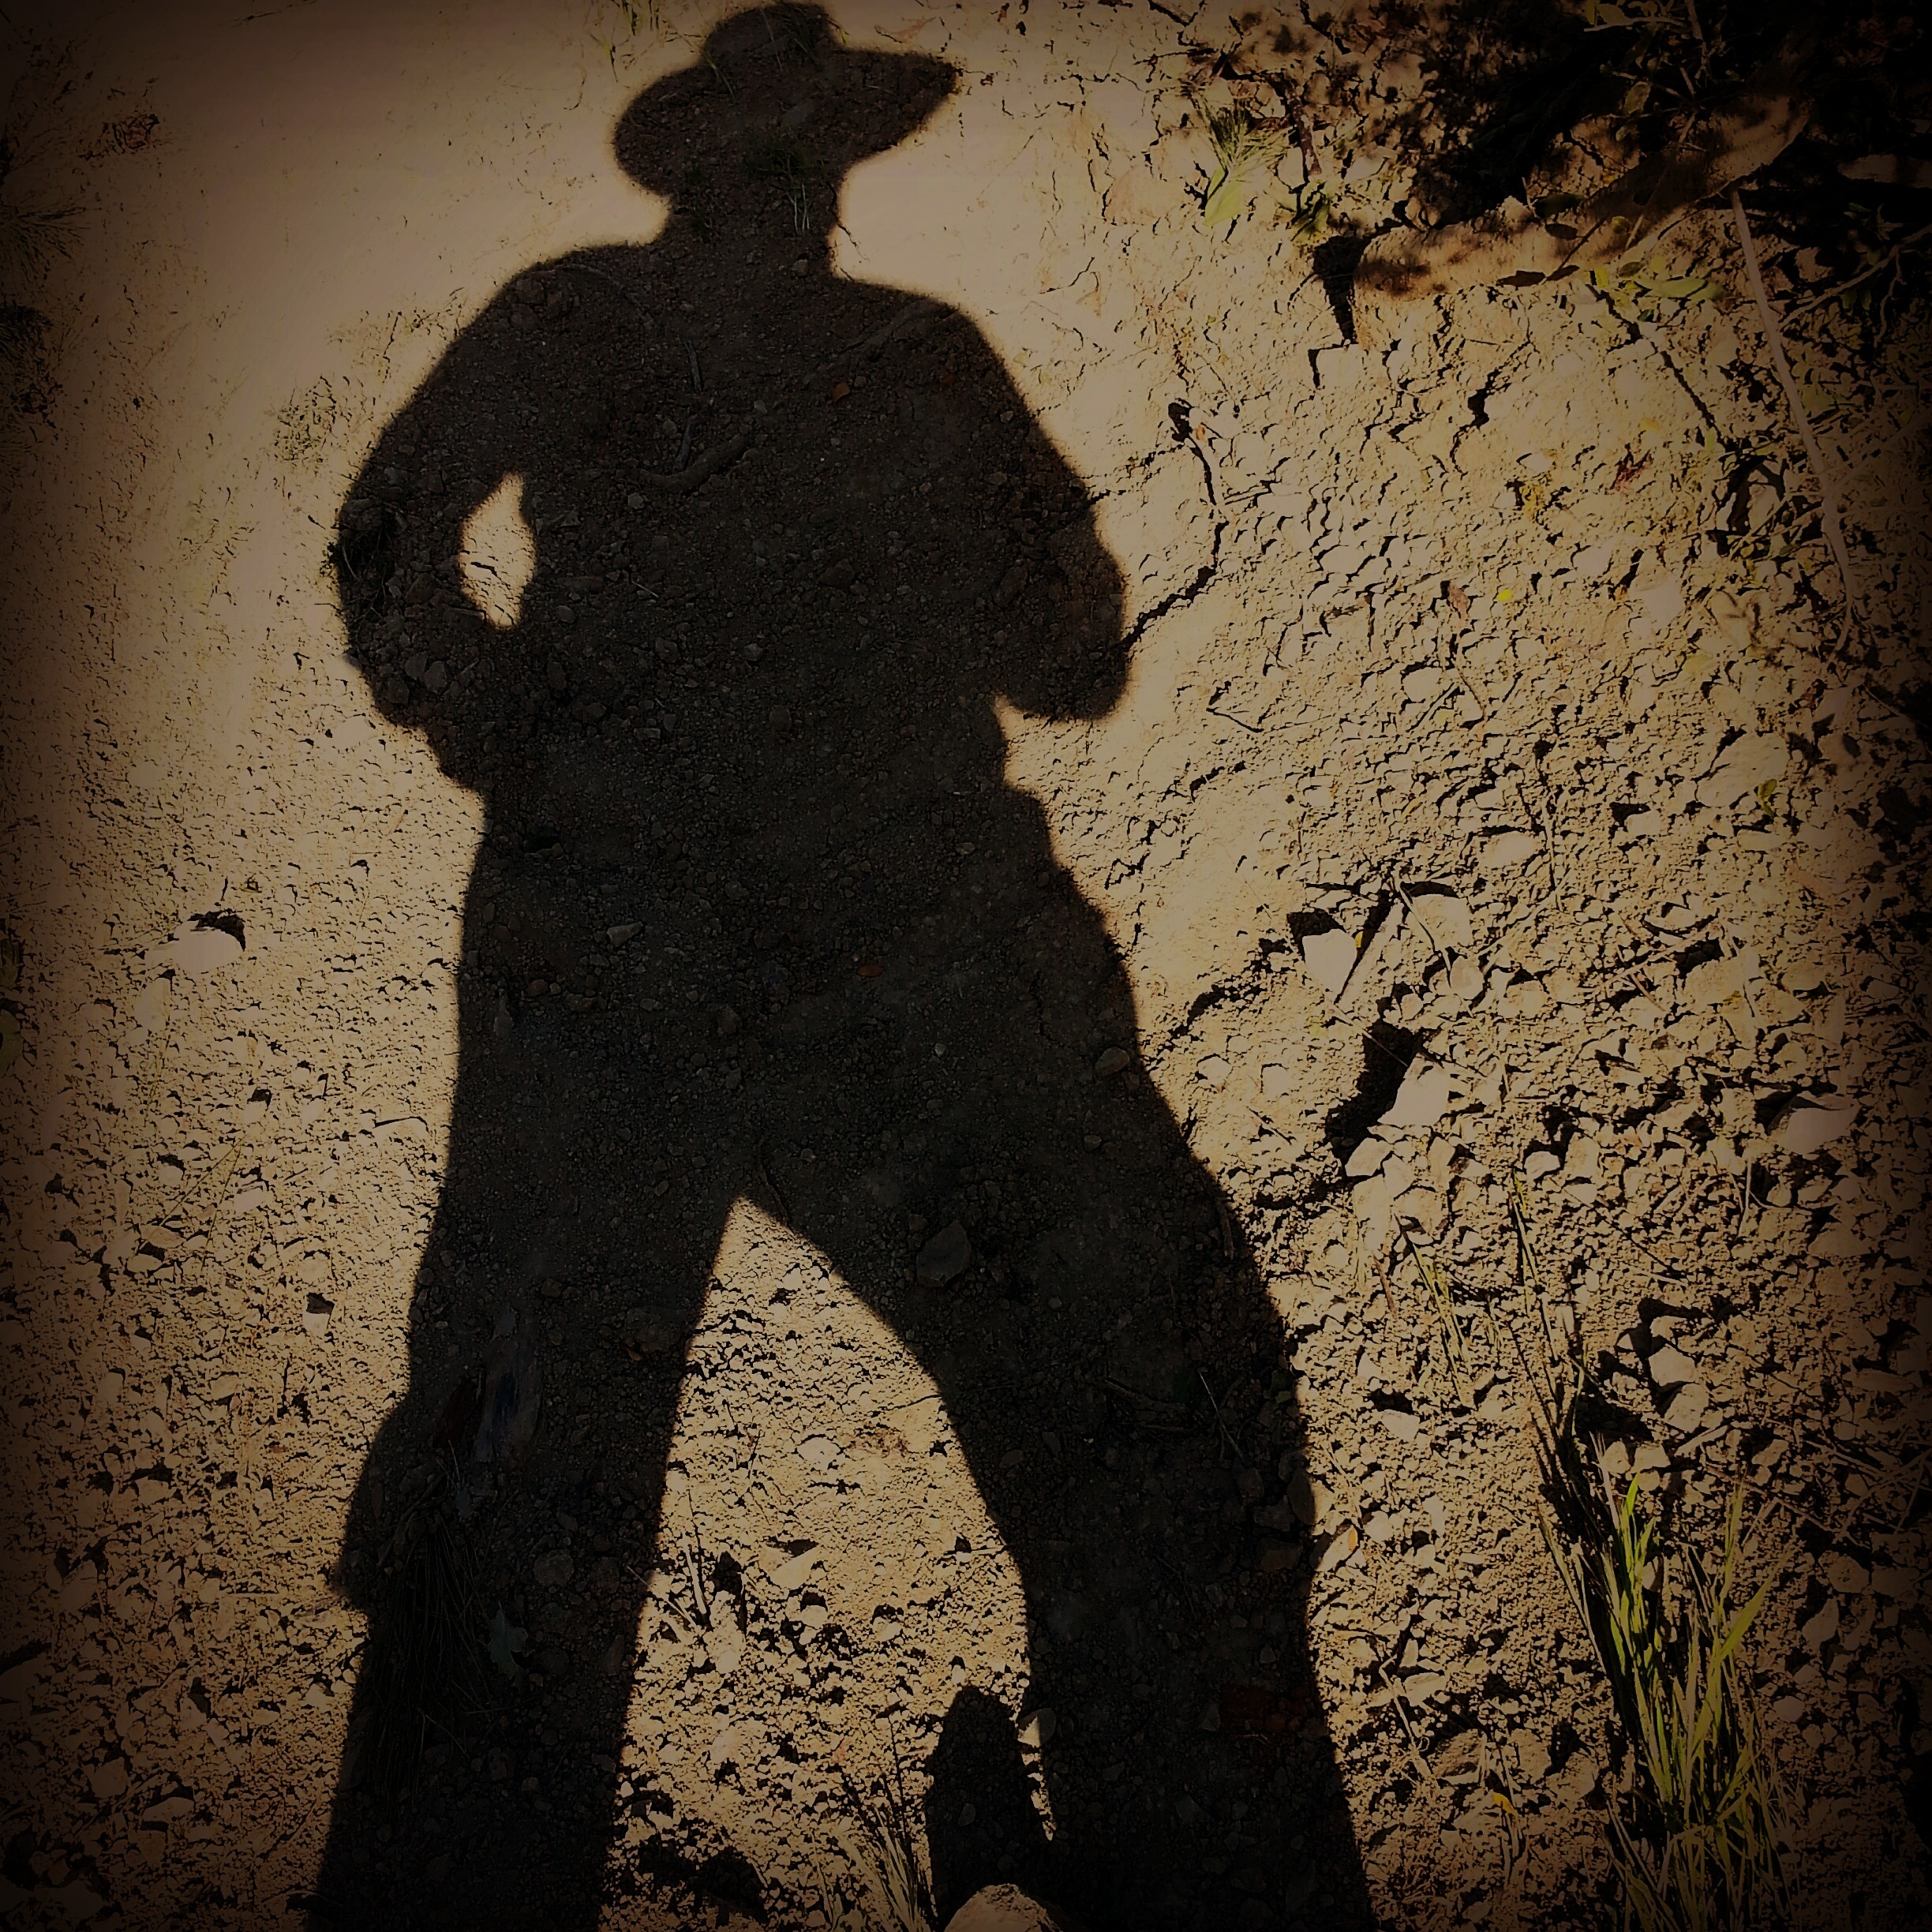 While you'll see a quite a few cowboy hats and boots, there aren't too many cowboys left.